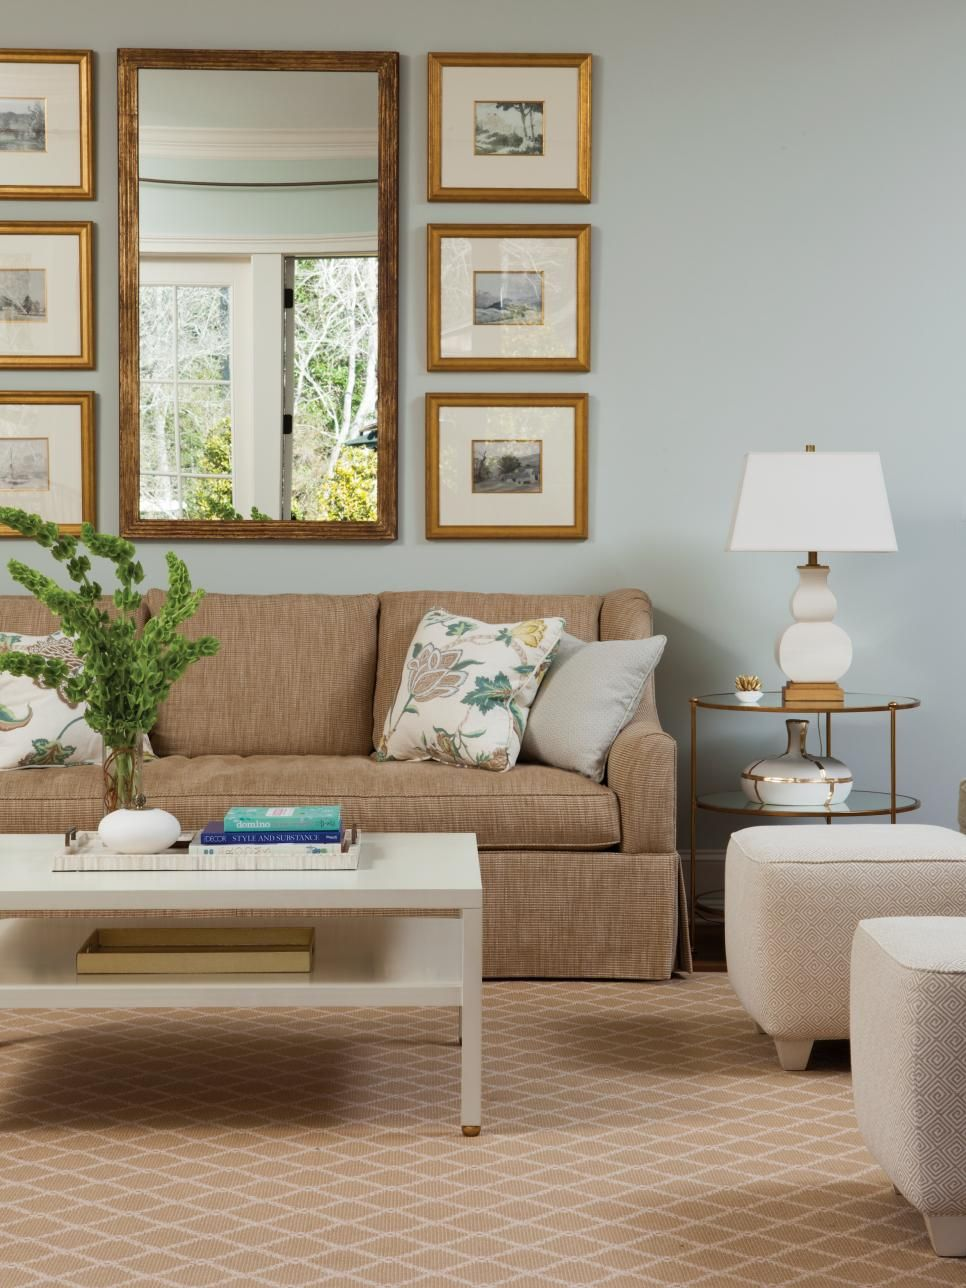 Light blue walls are paired with neutral furniture and - Home decorating ideas living room walls ...